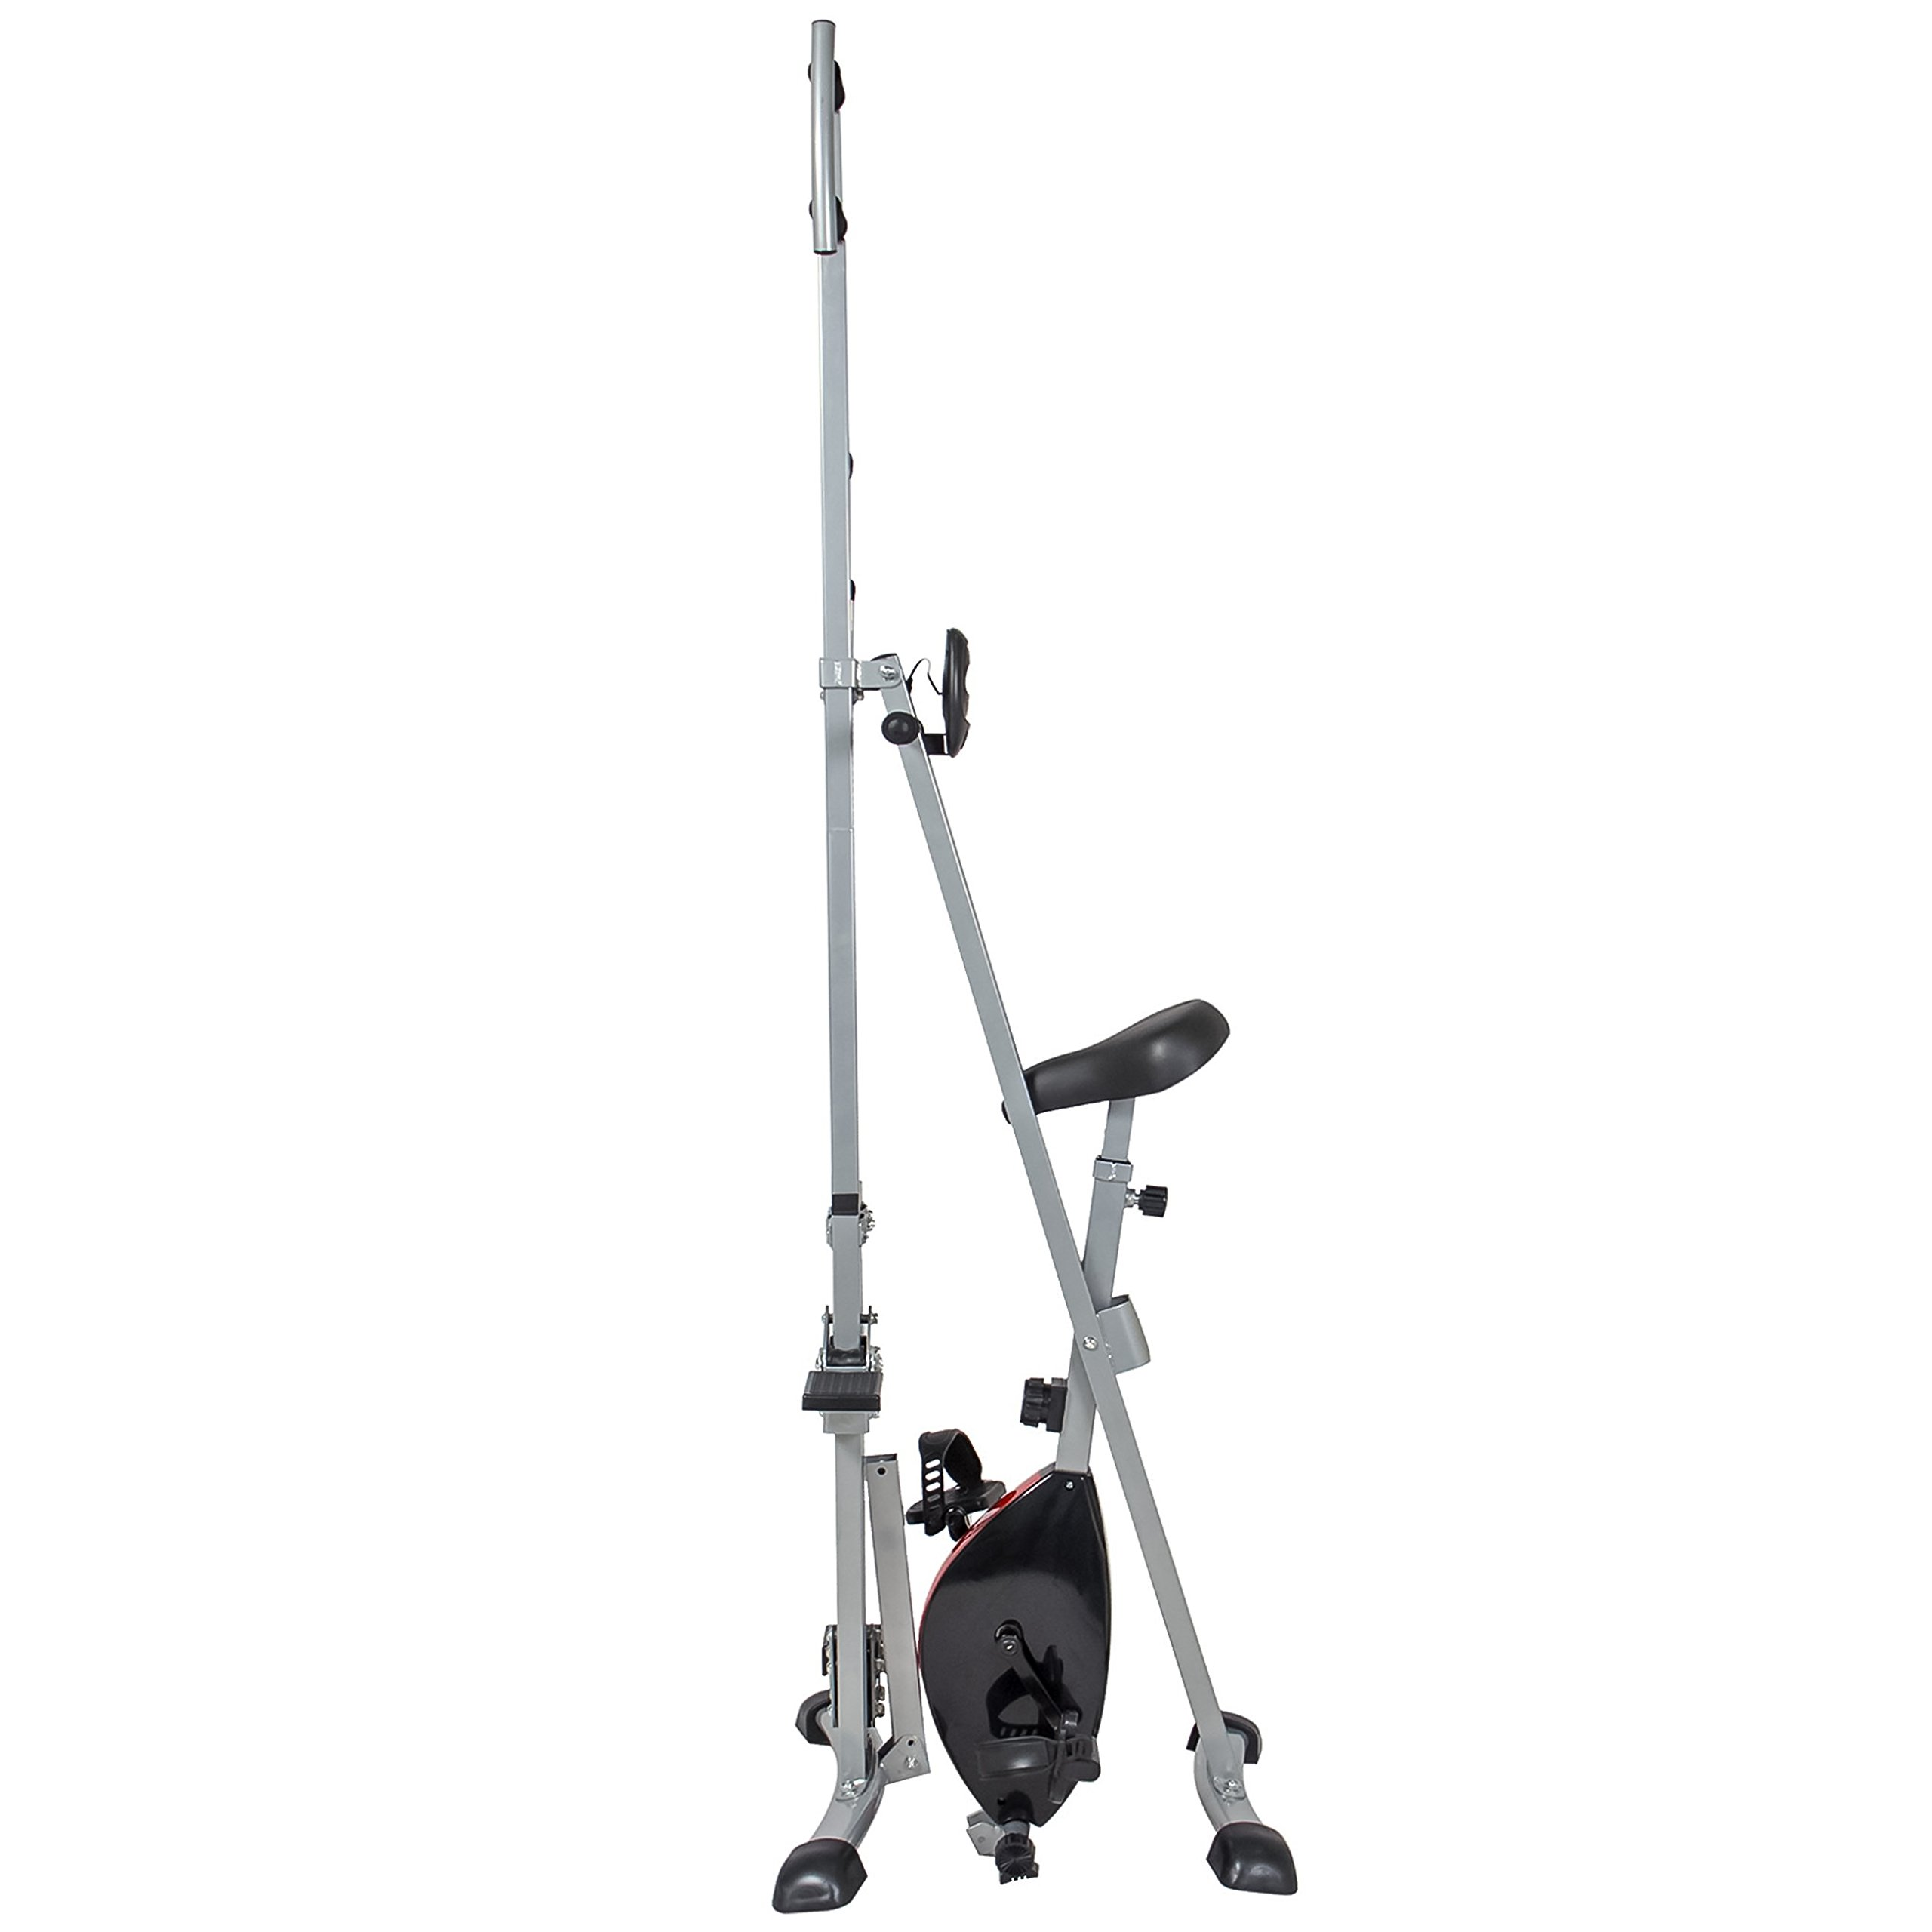 Best Choice Products Total Body 2-in-1 Vertical Climber Magnetic Exercise Bike Fitness Machine by Best Choice Products (Image #3)